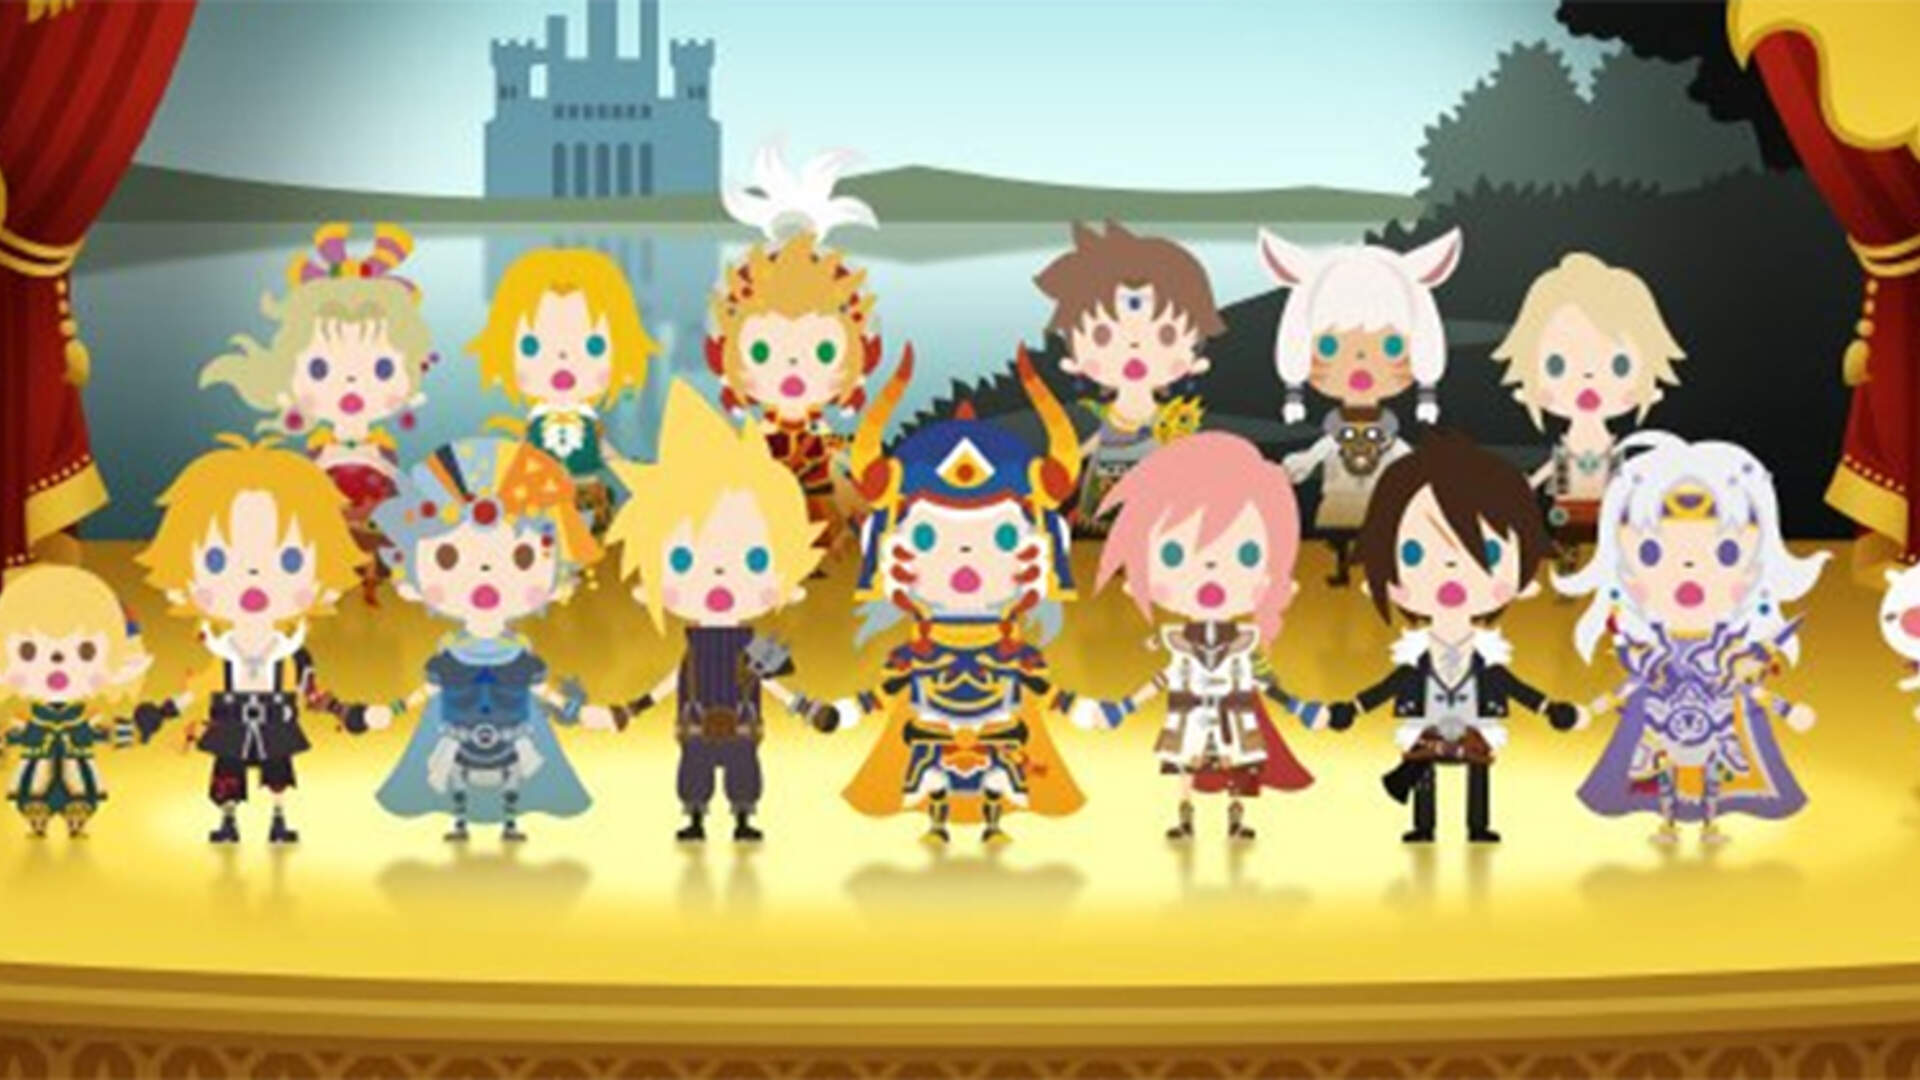 Theatrhythm Final Fantasy: Curtain Call 3DS Review: Nostalgia Delivery Device